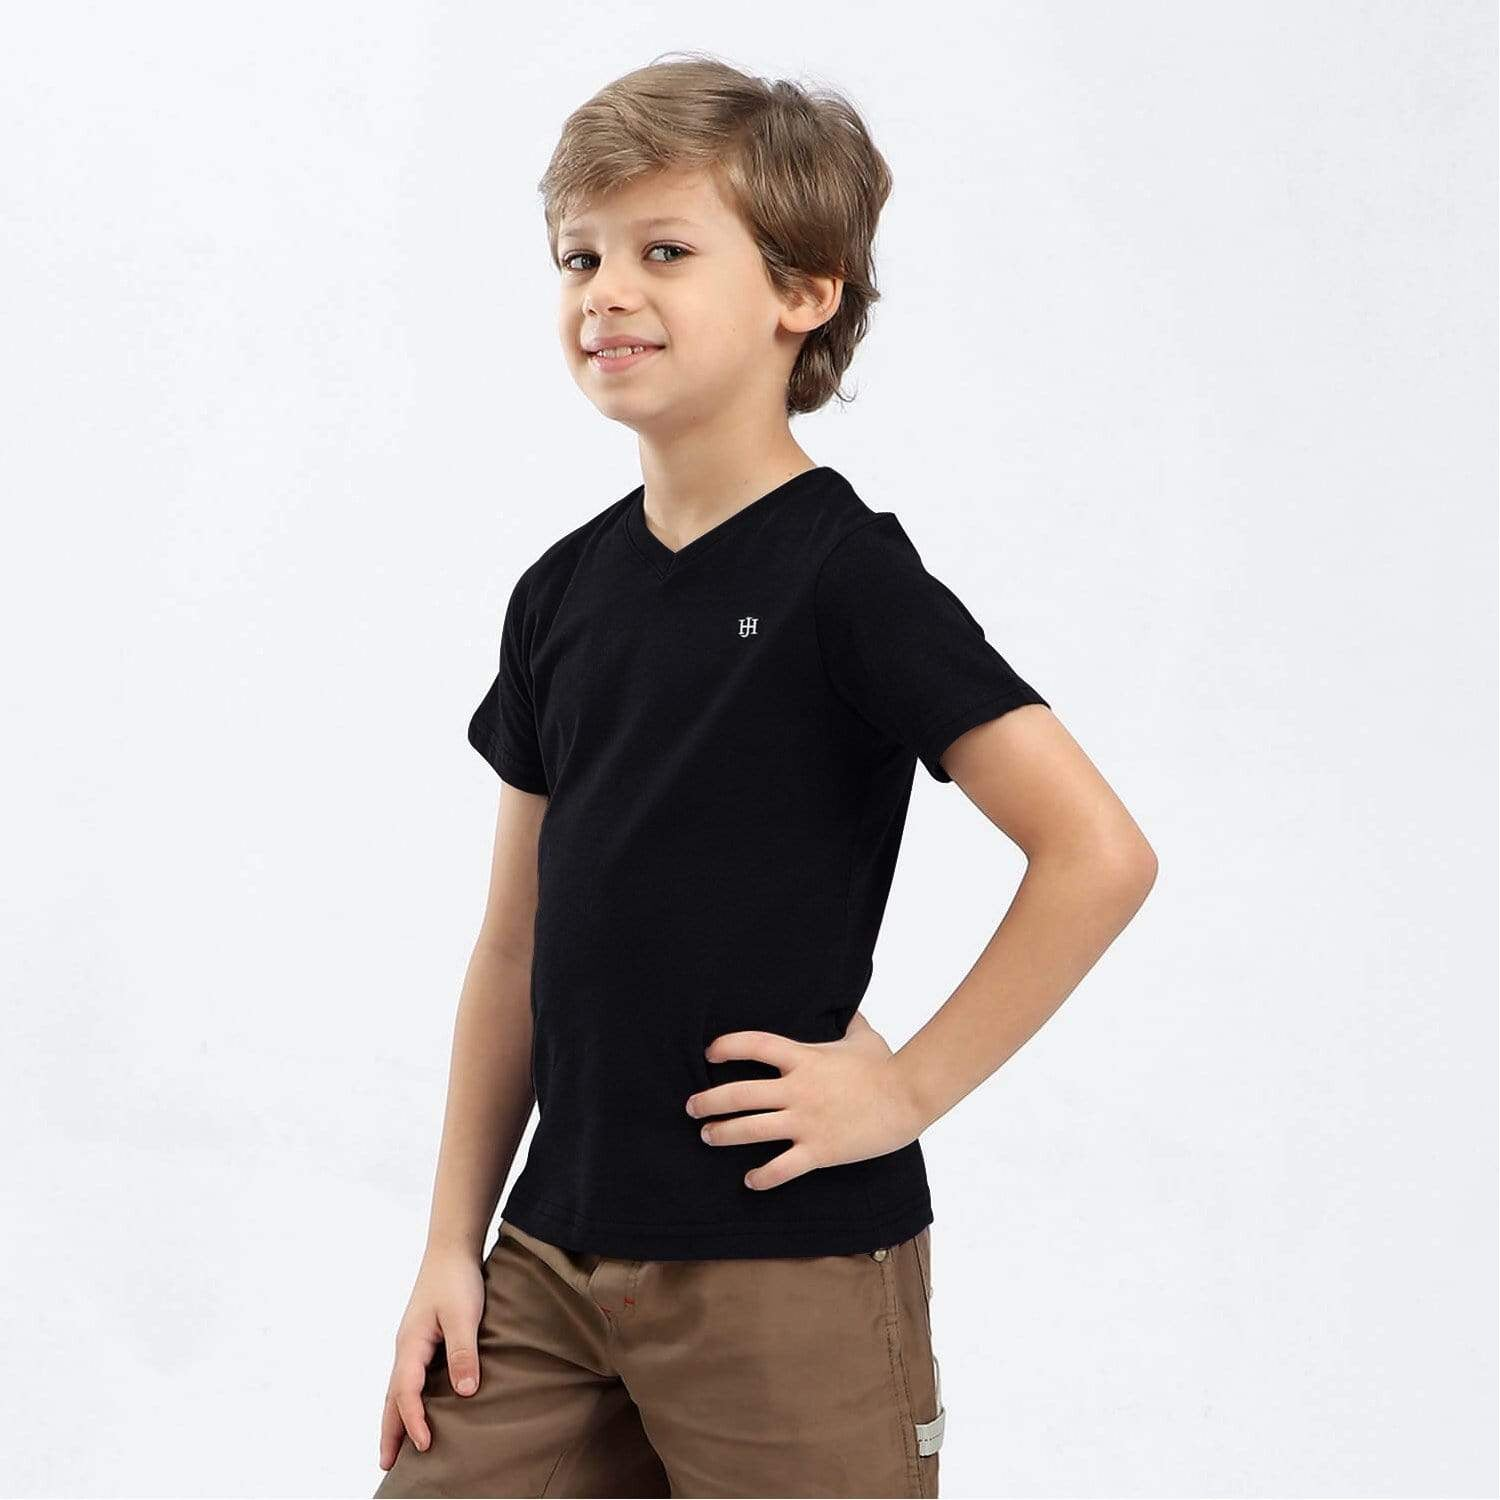 Henry James Kid's T-Shirt Black / 5-6 Years Boy's Henry James Classic V-Neck Neck Tee Shirt